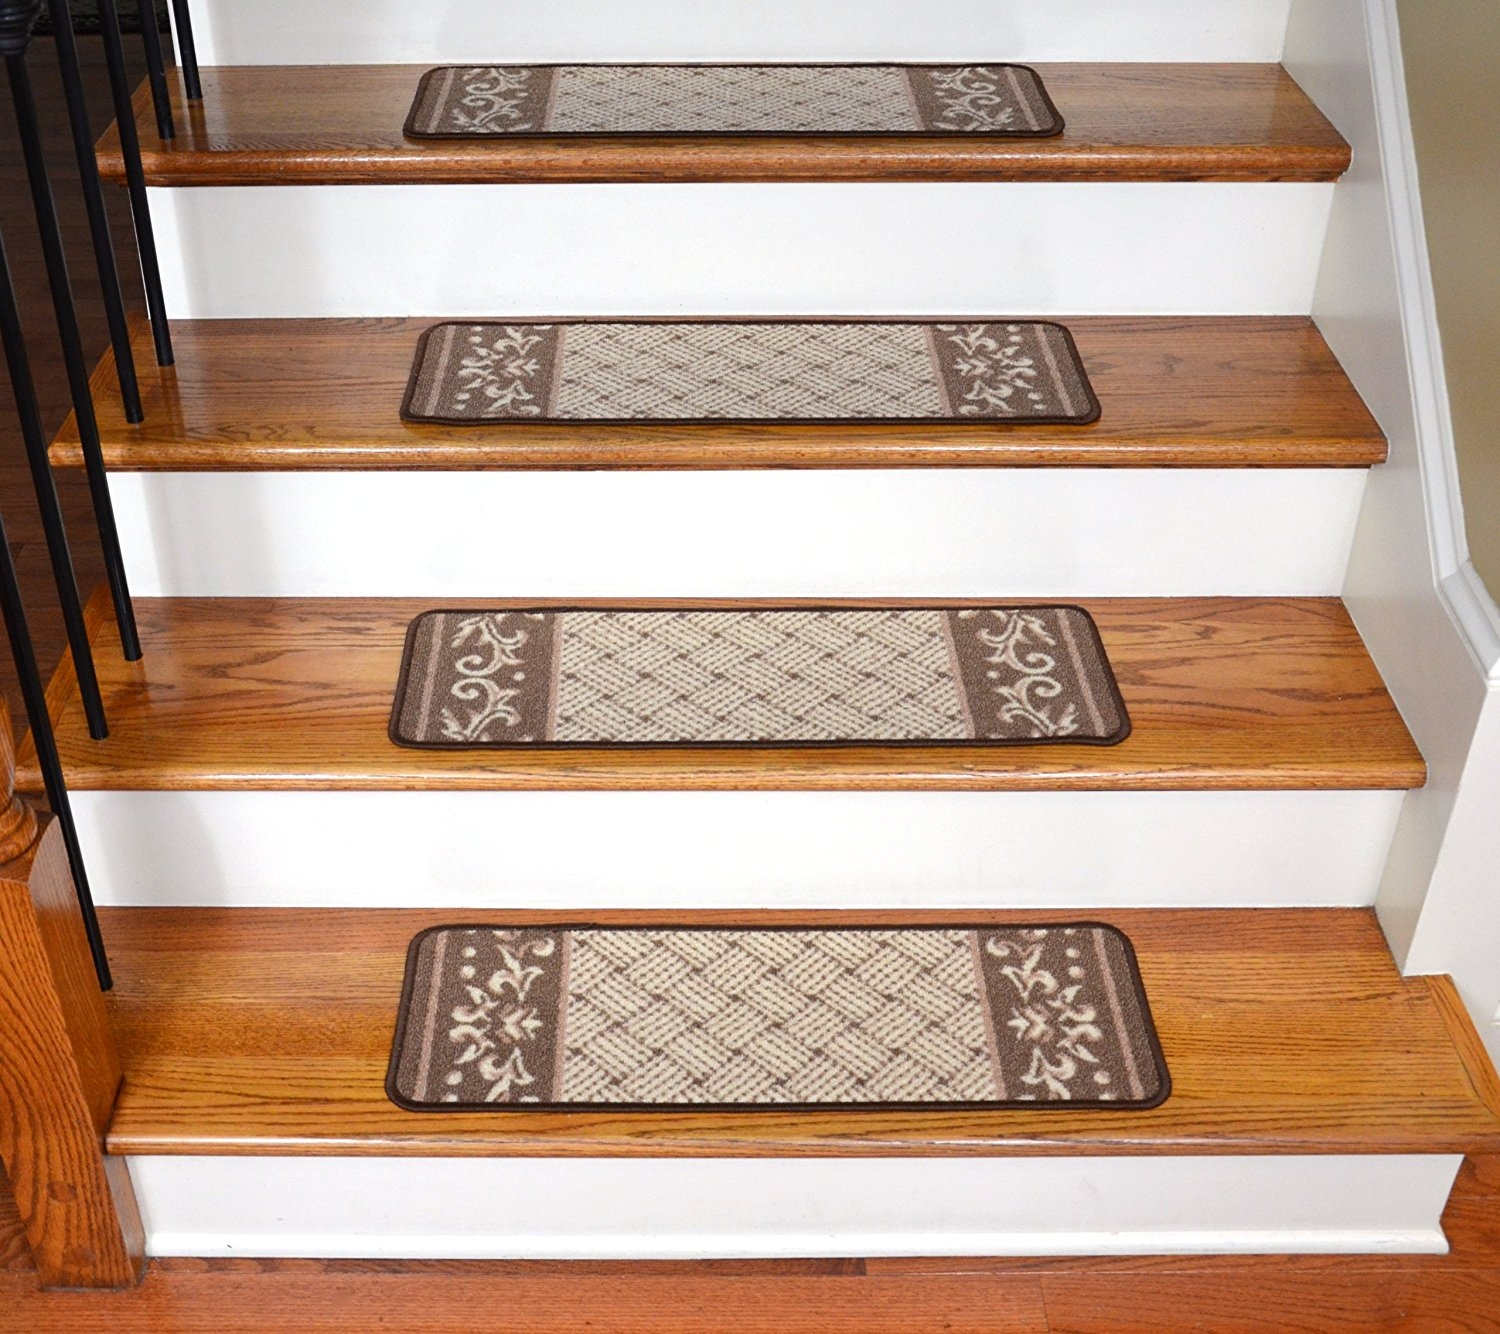 Amazon Carpet Stair Treads Caramel Scroll Border Regarding Rectangular Stair Tread Rugs (Image 1 of 15)